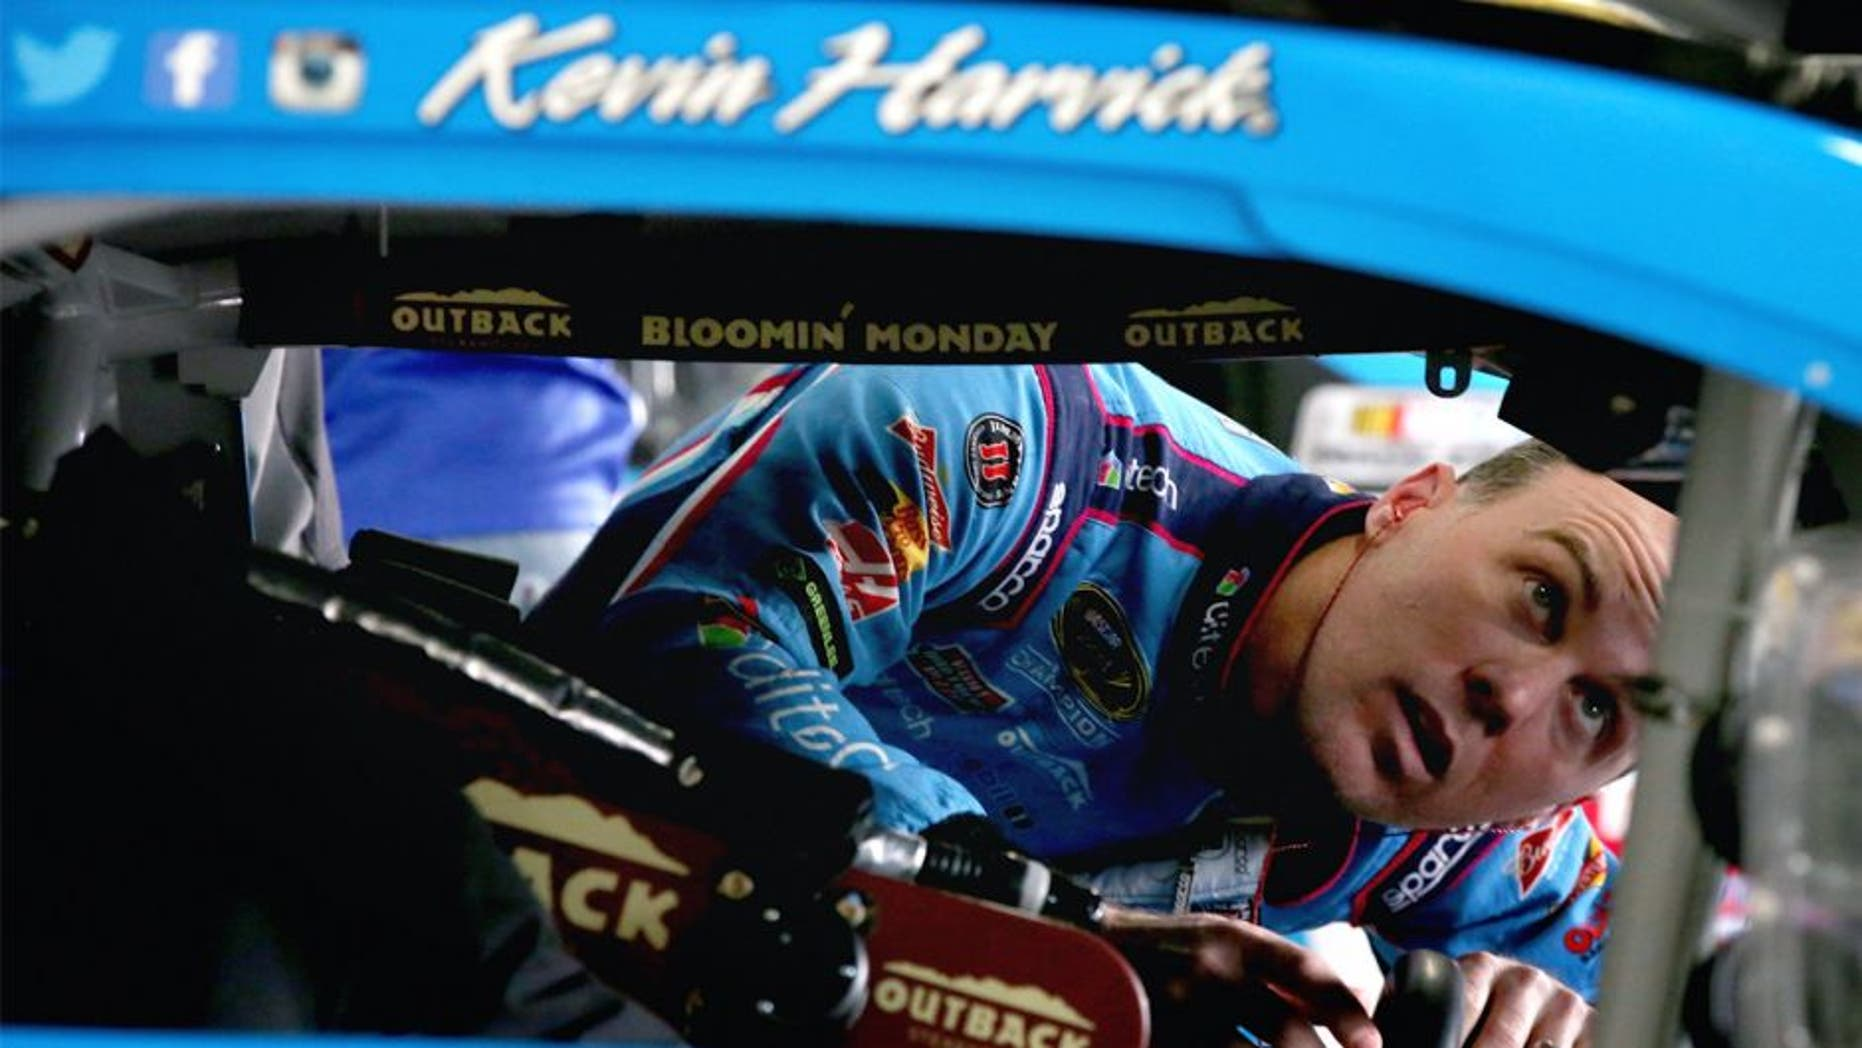 LOUDON, NH - SEPTEMBER 25: Kevin Harvick, driver of the #4 Ditech Chevrolet, stands in the garage area during practice for the NASCAR Sprint Cup Series Sylvania 300 at New Hampshire Motor Speedway on September 25, 2015 in Loudon, New Hampshire. (Photo by Sean Gardner/Getty Images)